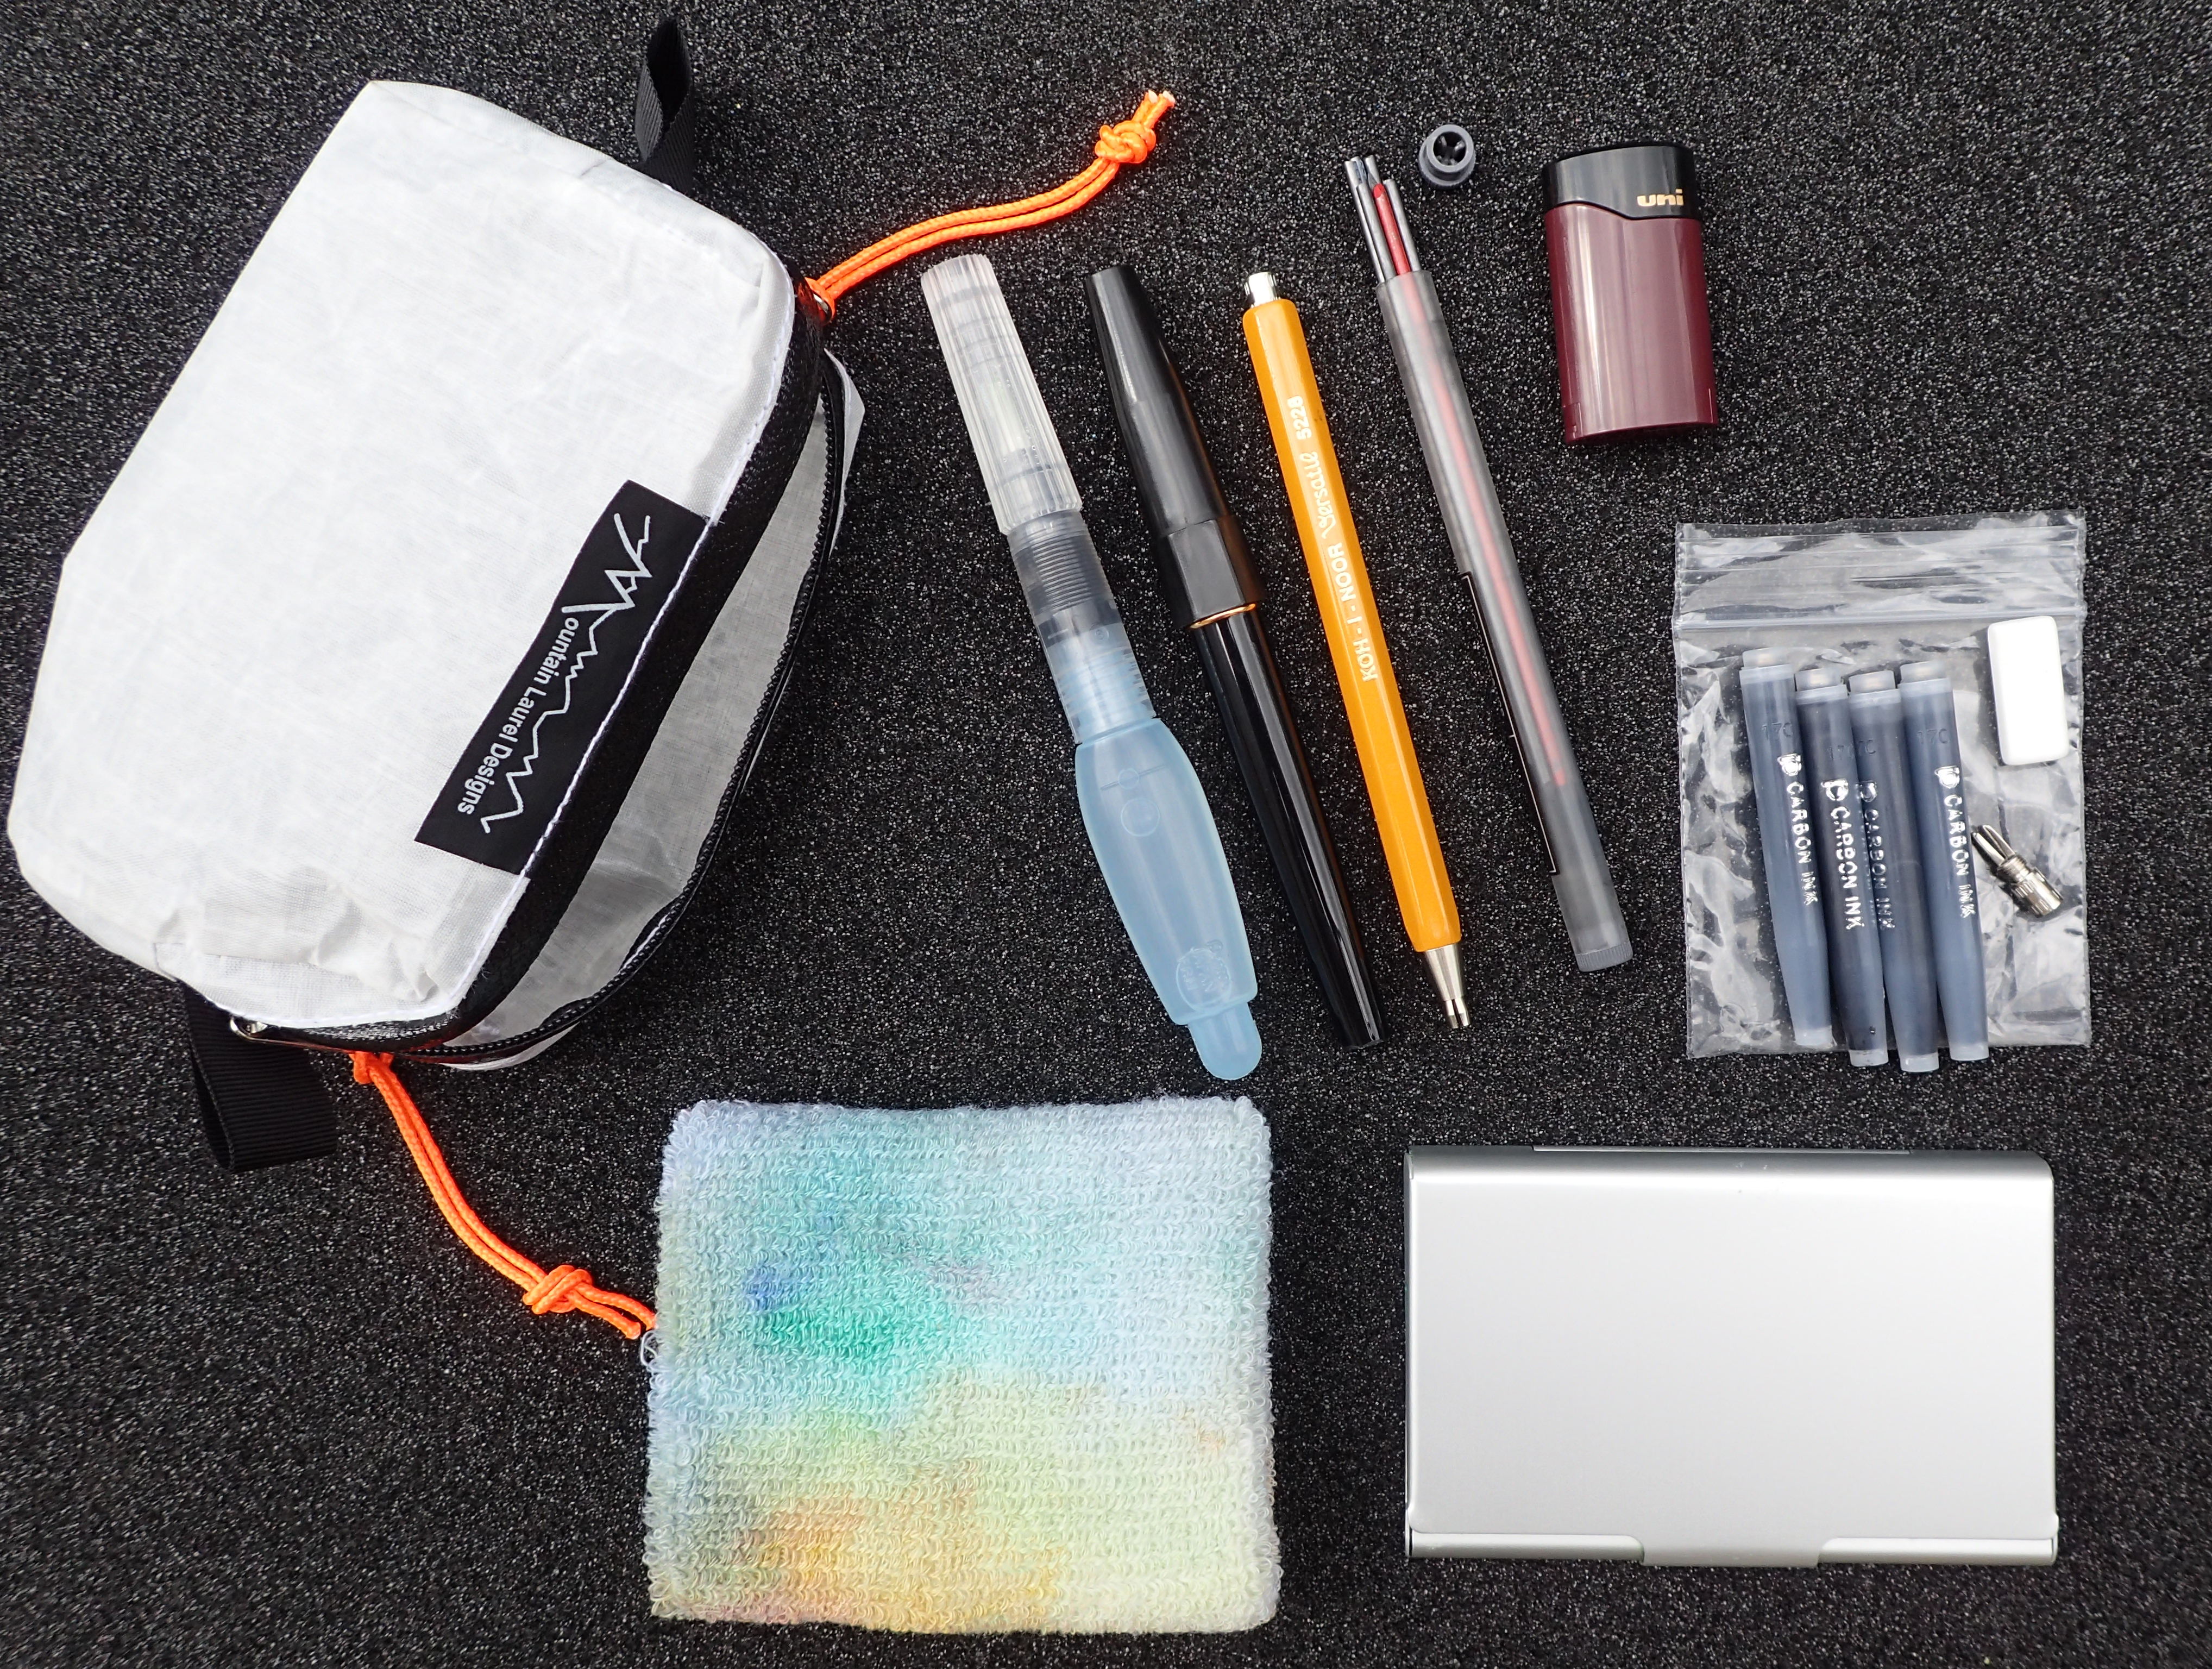 Bespoke palette forms part of a lightweight sketching kit for use while backpacking